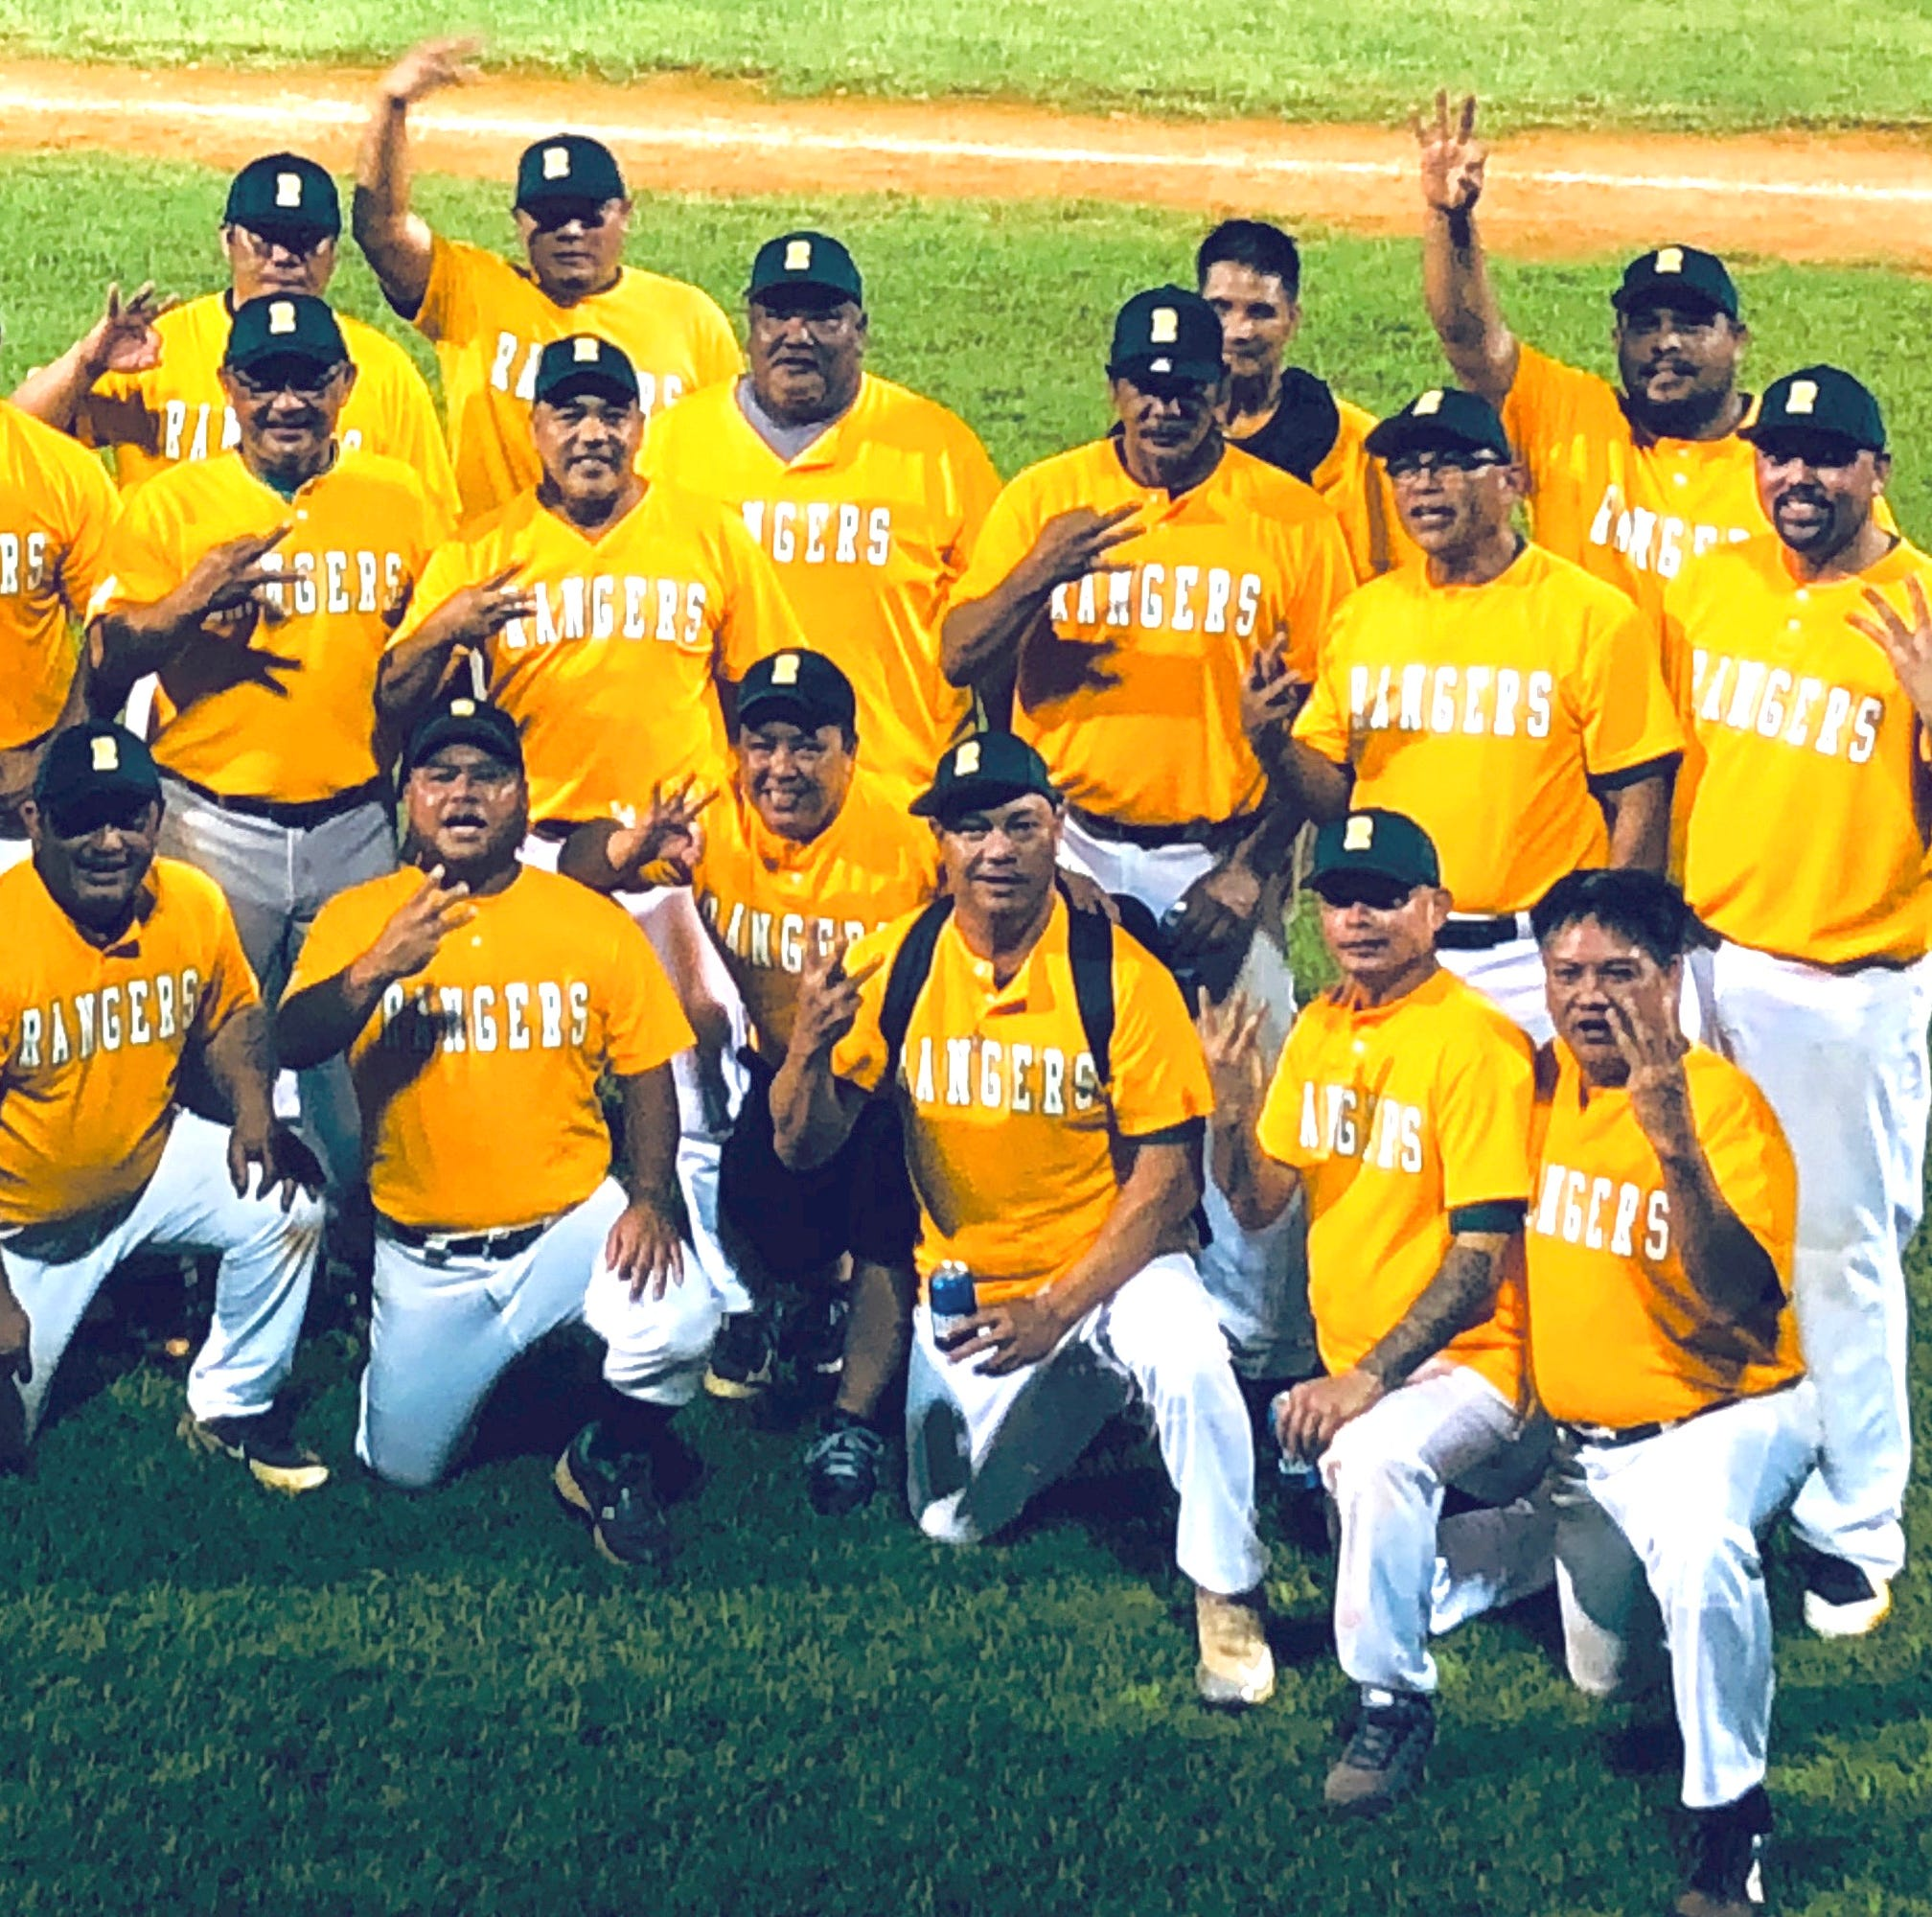 Southern Rangers take home baseball championship title